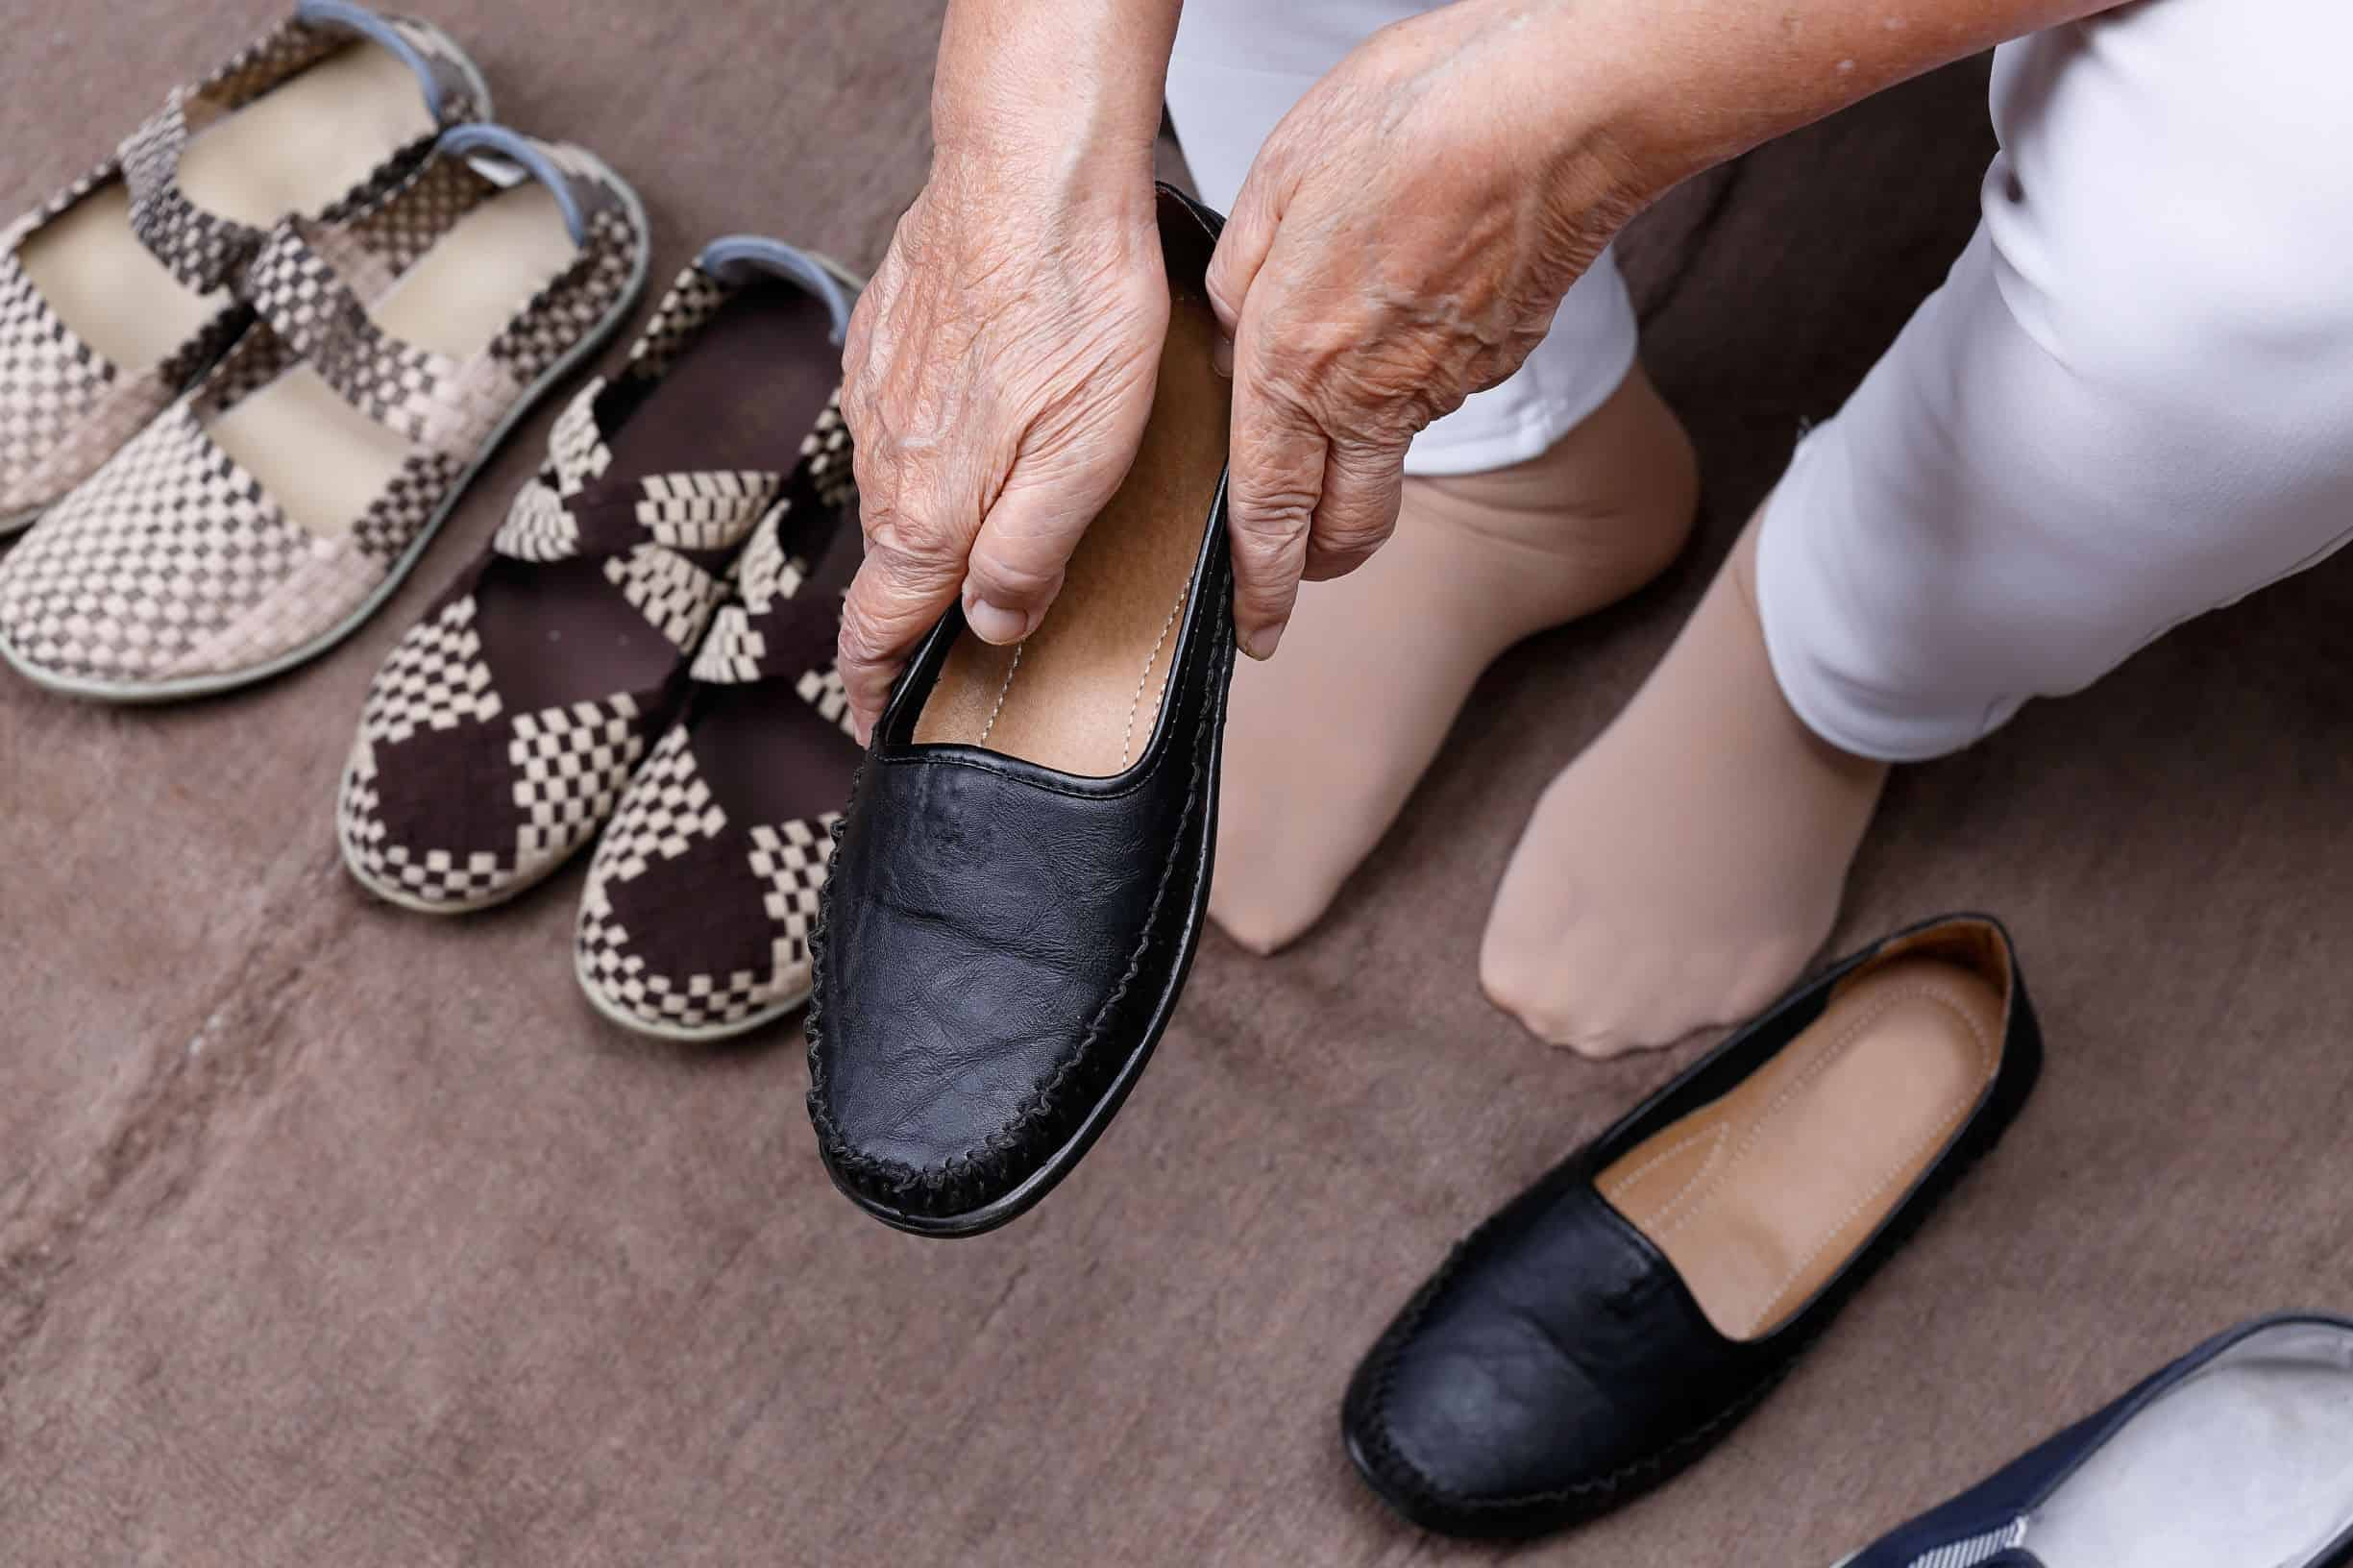 Elderly putting on supportive shoes